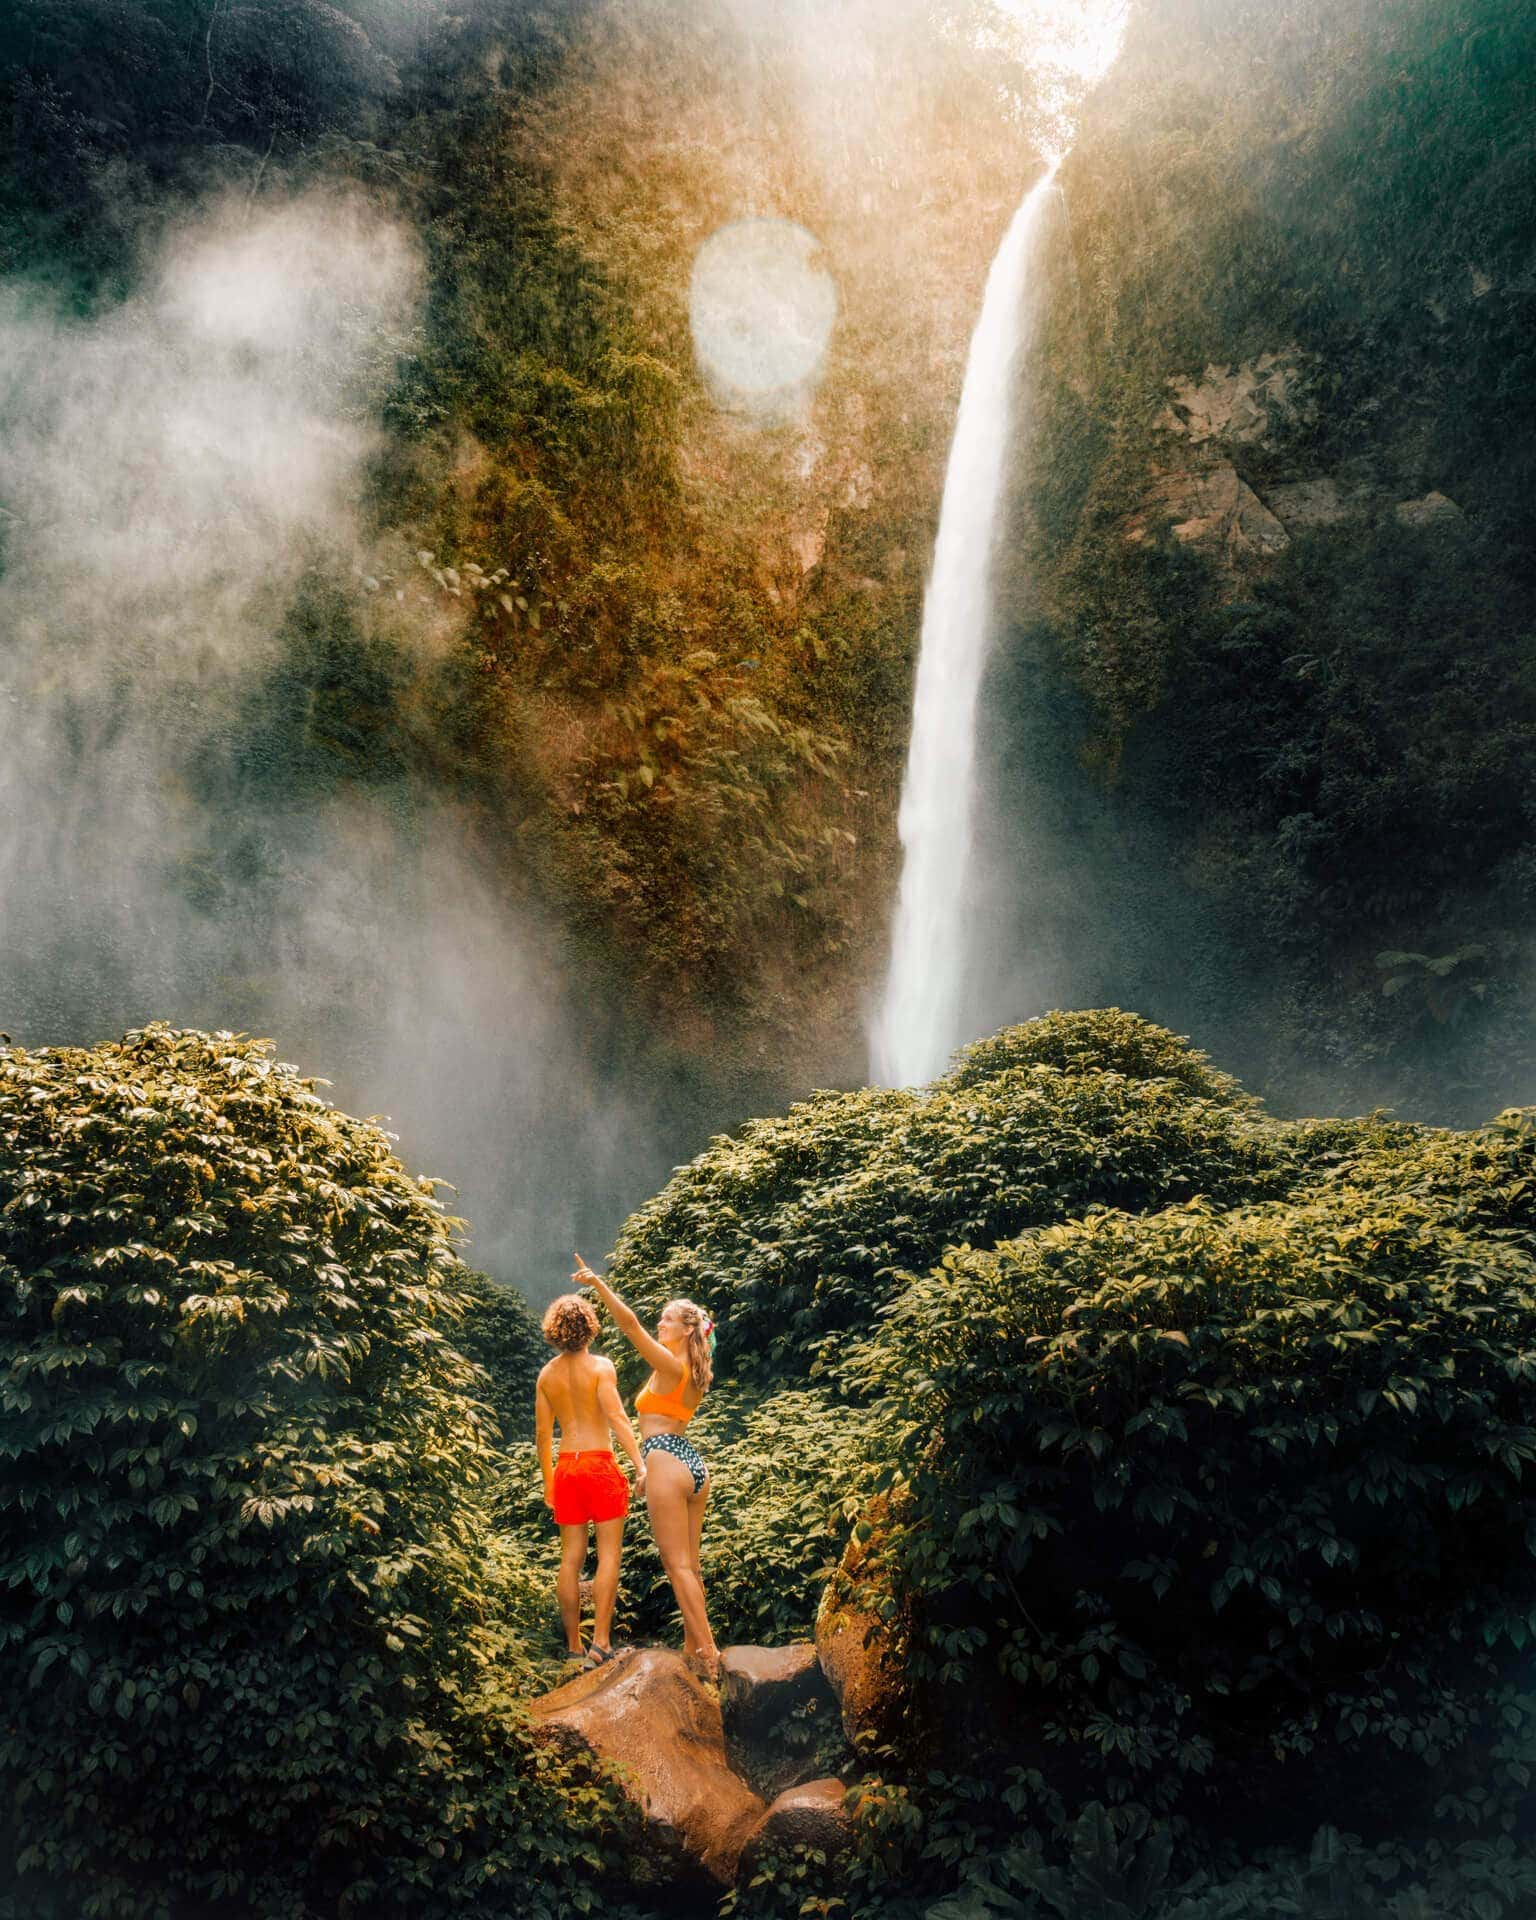 bromo ijen tour Coban Pelangi waterfall